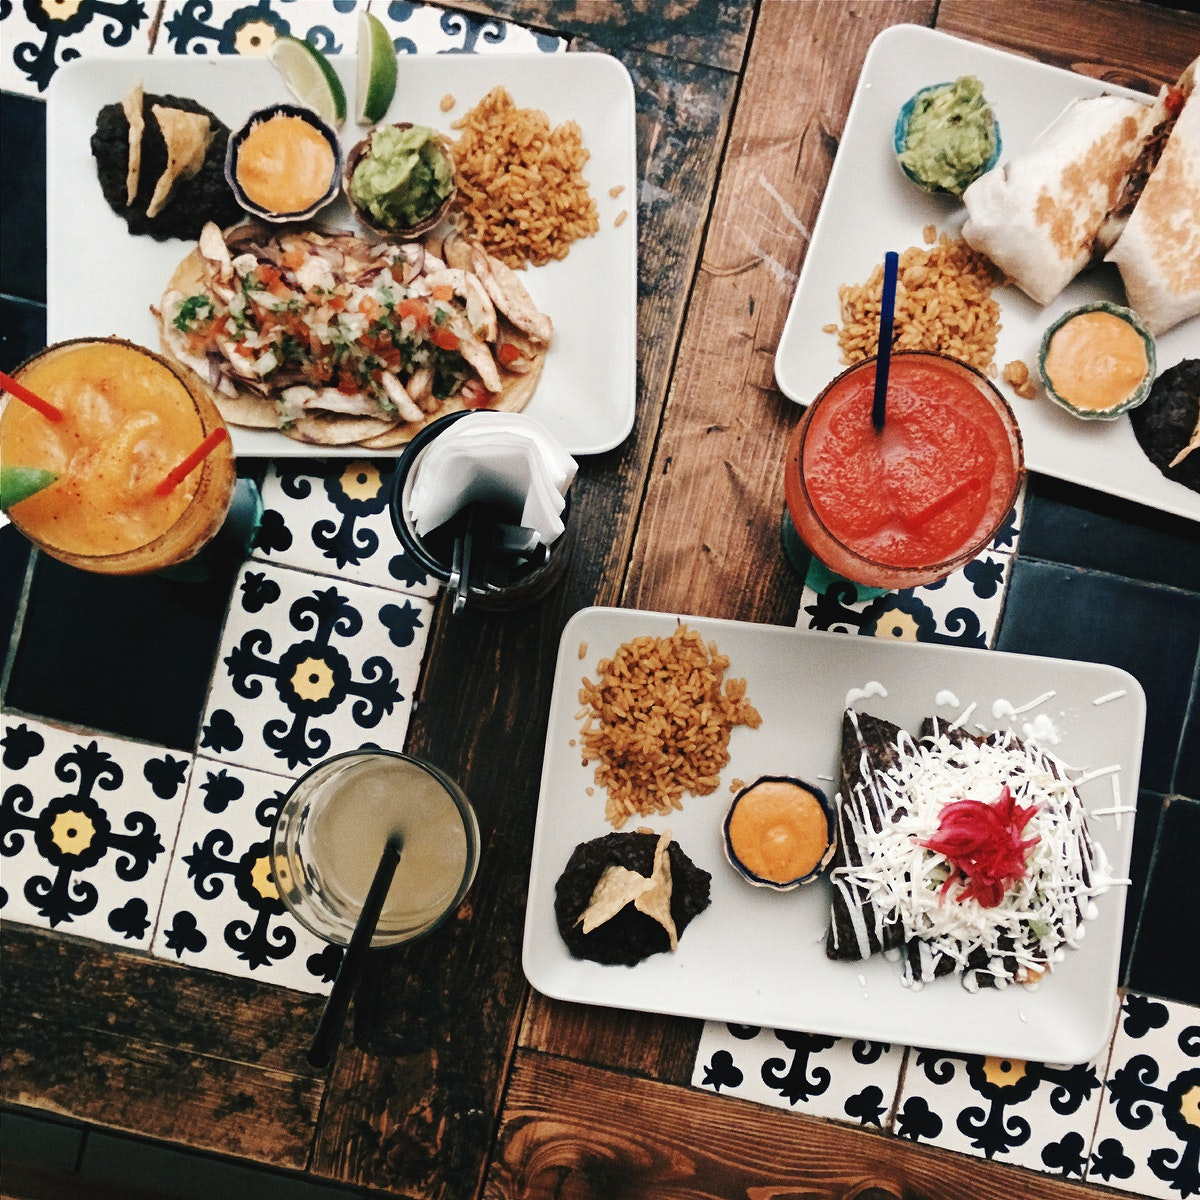 Delicious food in a Mexican restaurant